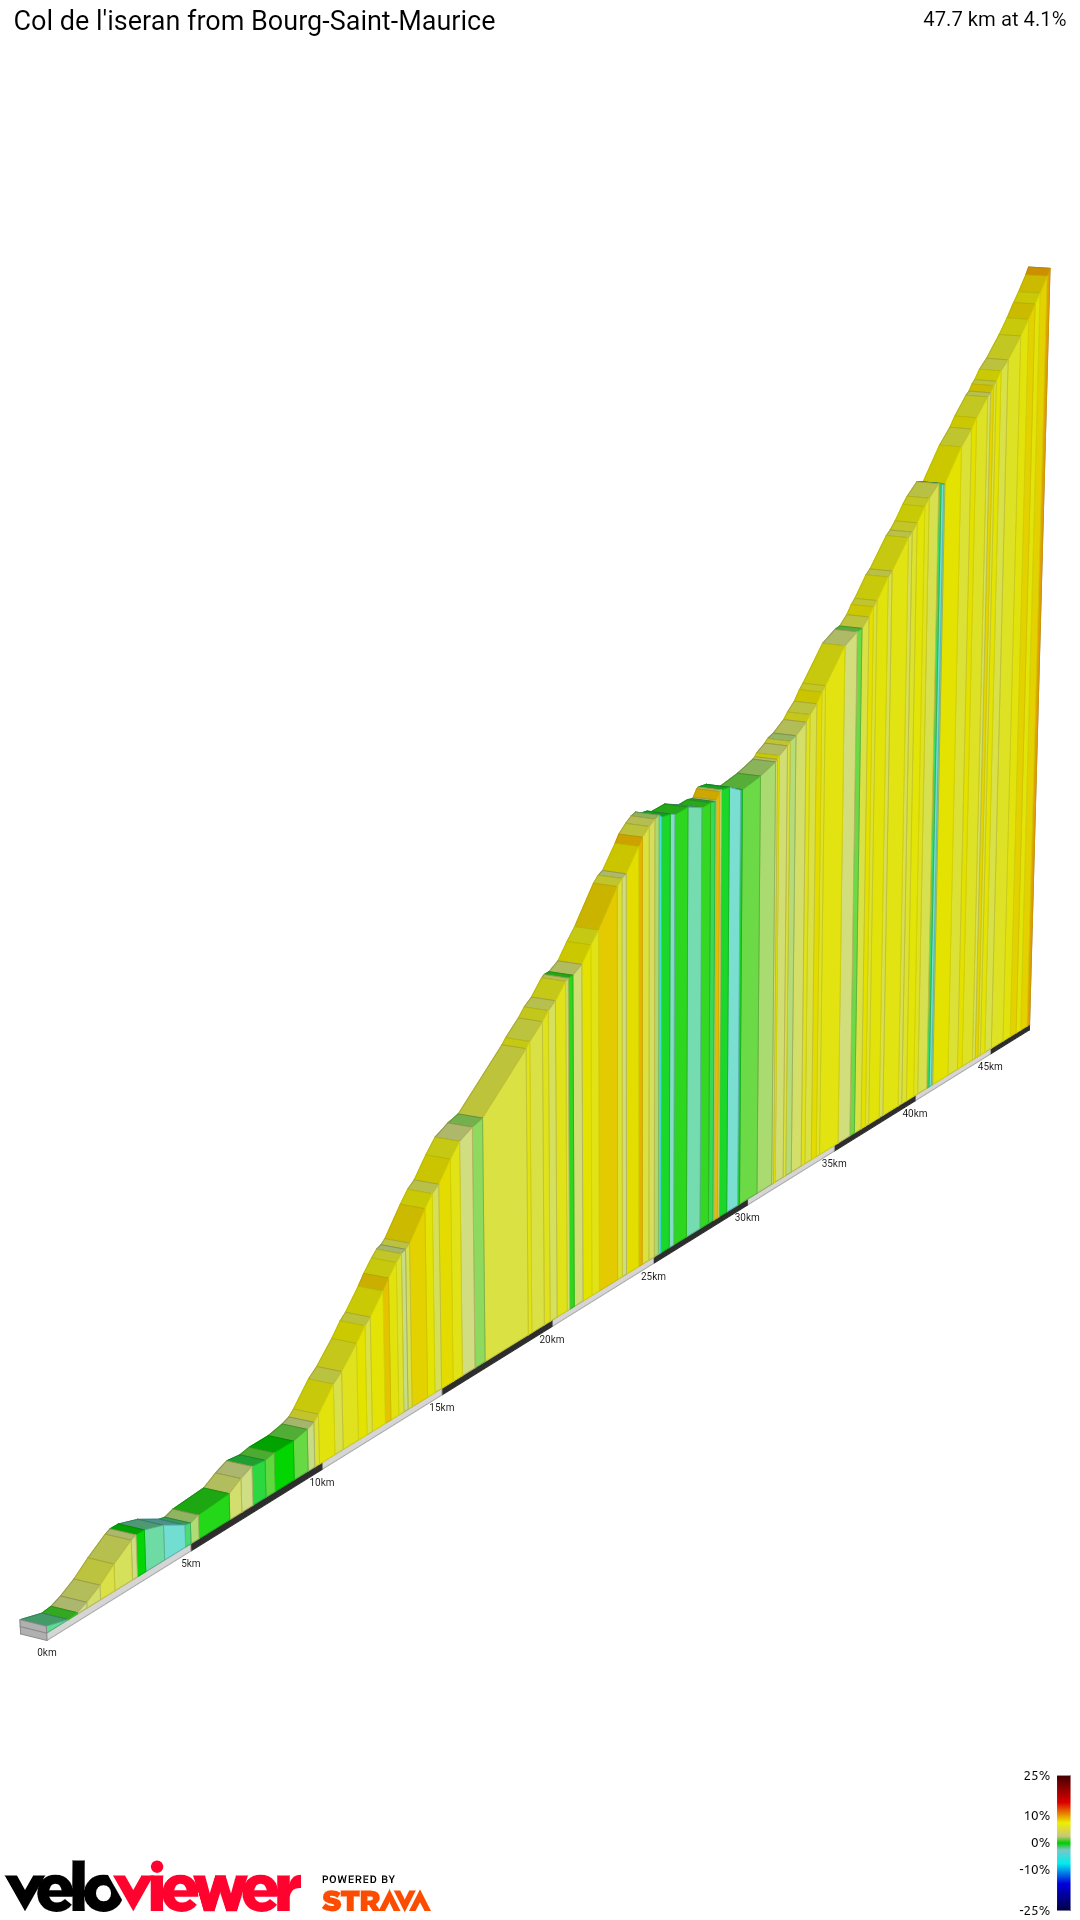 2D Elevation profile image for Col de l'iseran from Bourg-Saint-Maurice